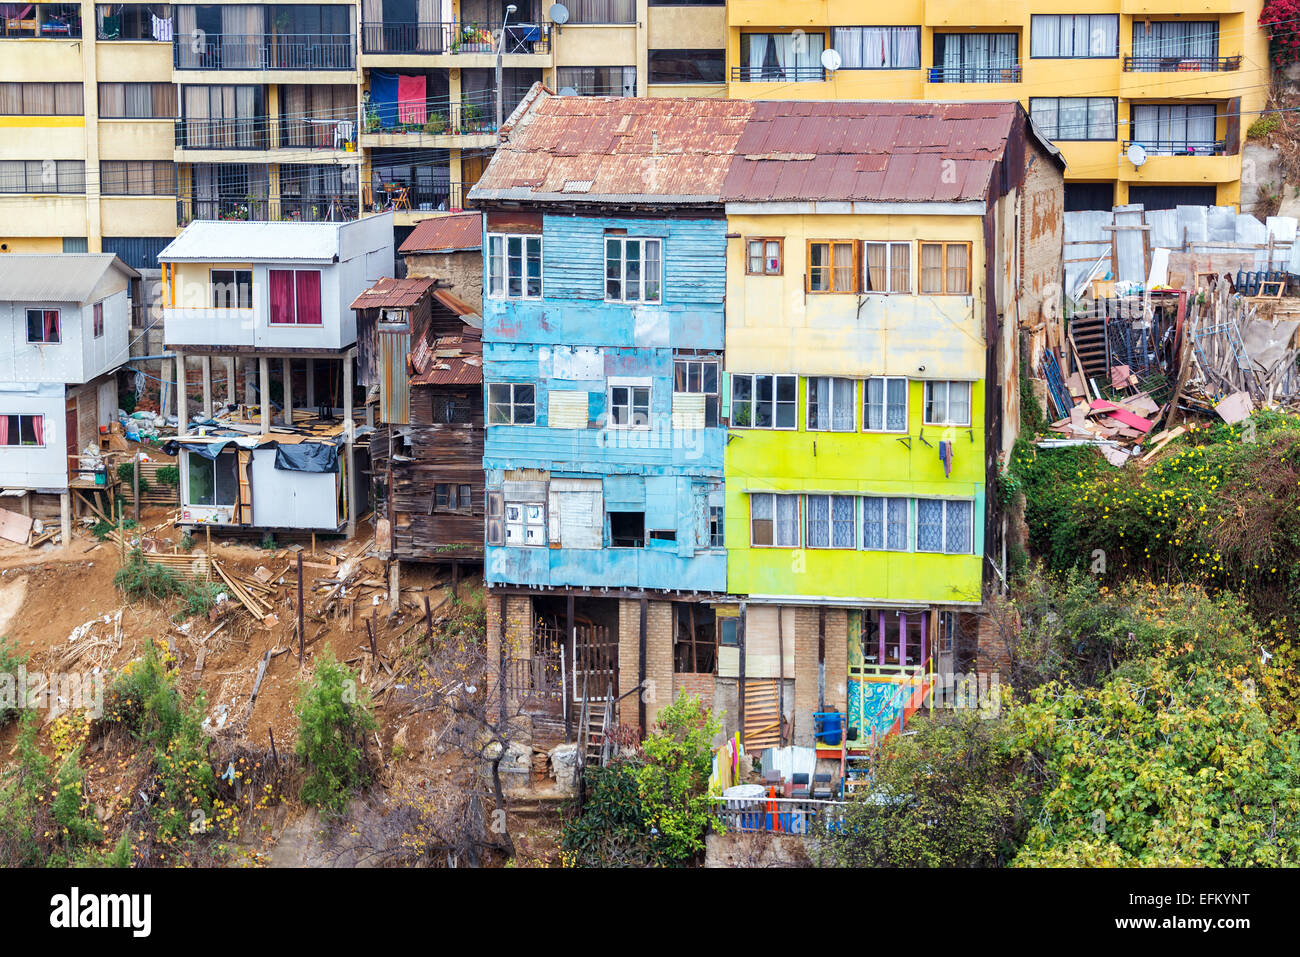 Facades of rustic houses in Valparaiso, Chile - Stock Image